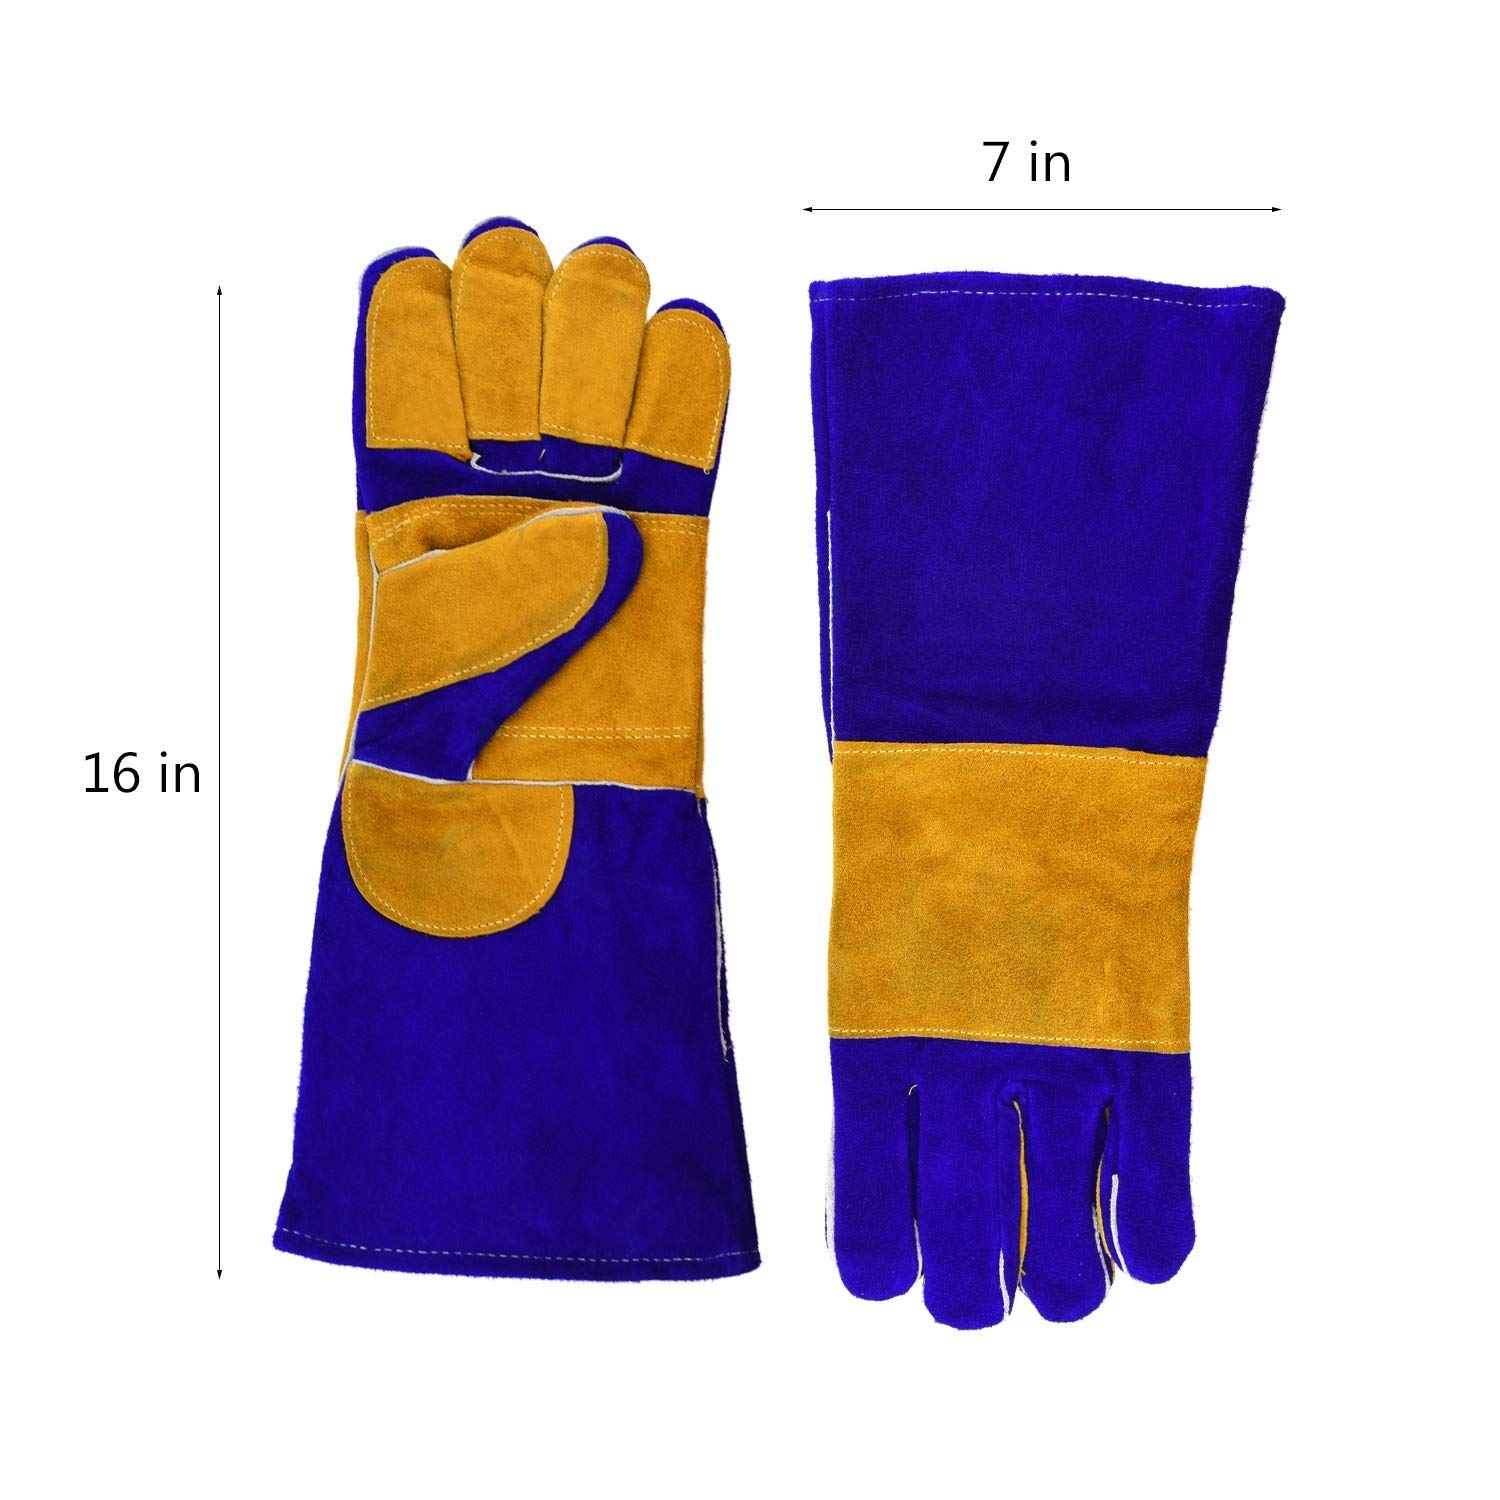 AINIYF Heavy Duty Heat Resistant & Flame Retardant Welding & BBQ Gloves, Premium Cowhide Leather, Long 15.7 Inch Forearm Protection, Blue, Size Large by AINIYF (Image #5)